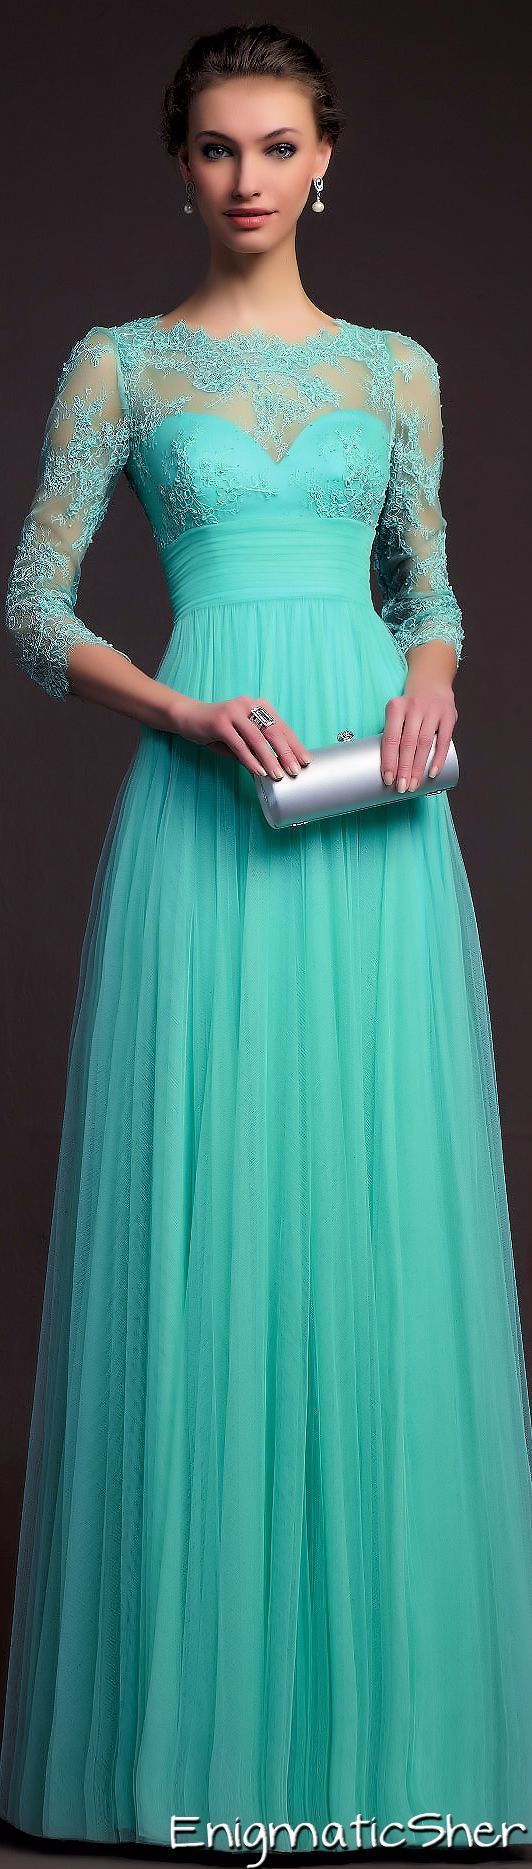 41 best Prom images on Pinterest | Graduation, Marriage and Clothes